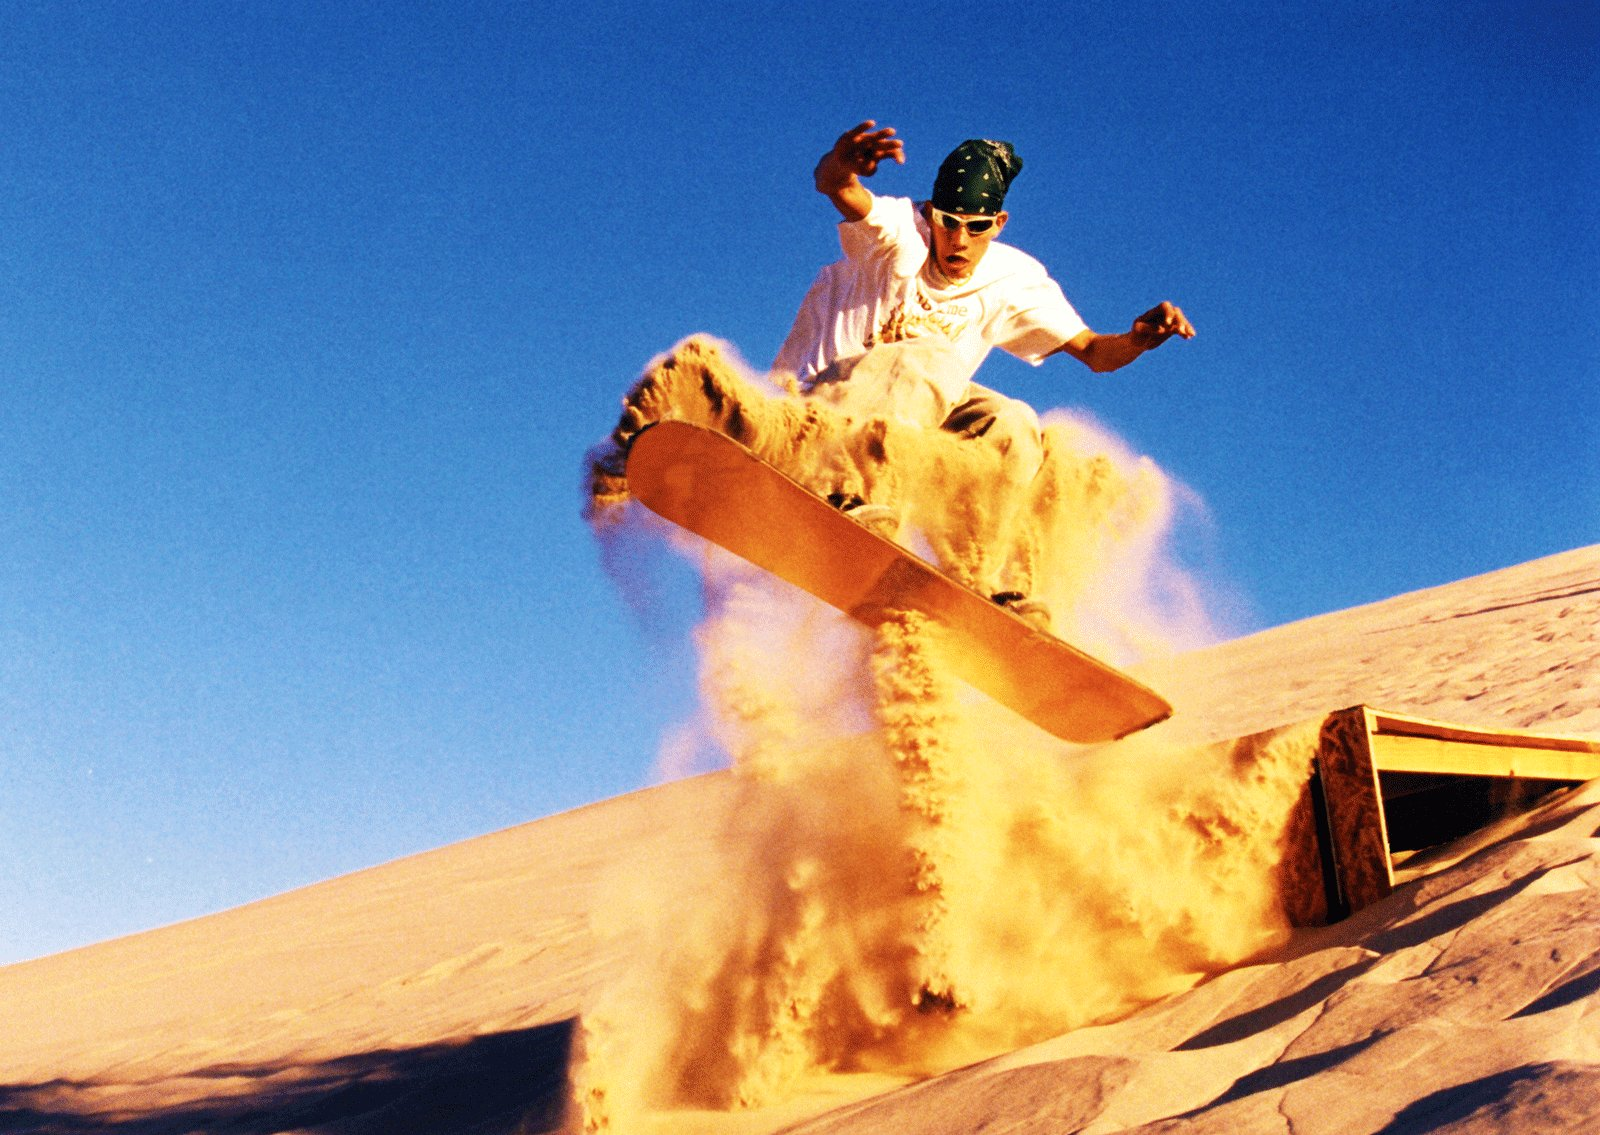 How to go sandboarding in Abu Dhabi